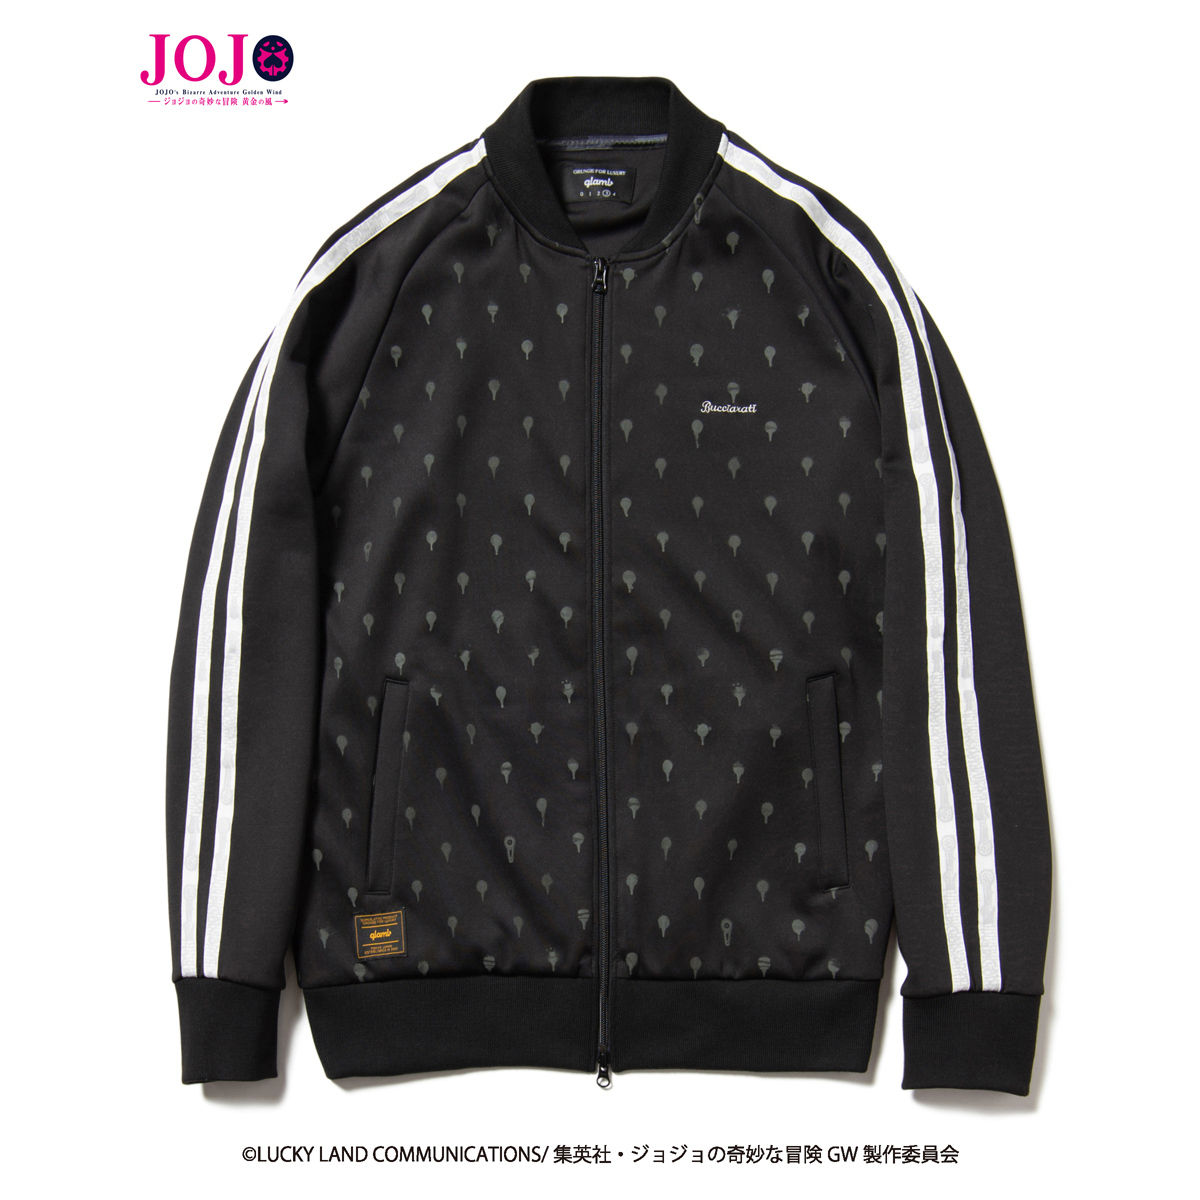 Bucciarati Track Jacket—JoJo's Bizarre Adventure: Golden Wind/glamb Collaboration